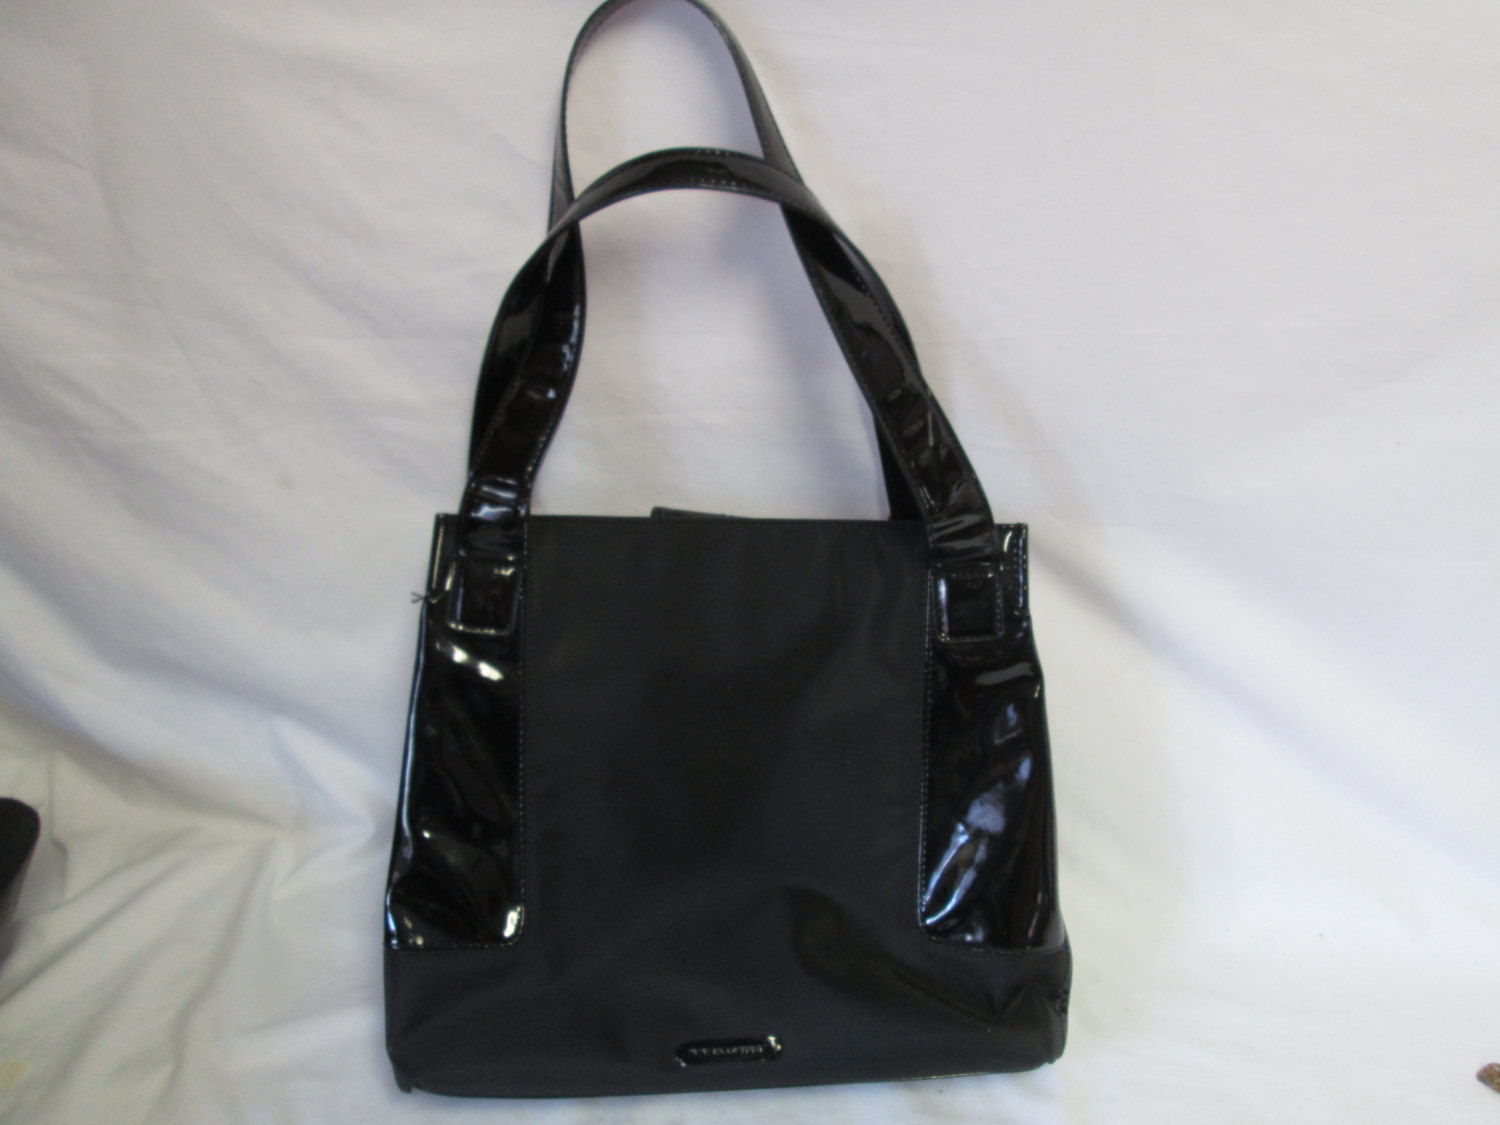 Vintage Black Top Handle Bag Fabric And Patent Leather Nine Co Tote Overnight Cosmetic